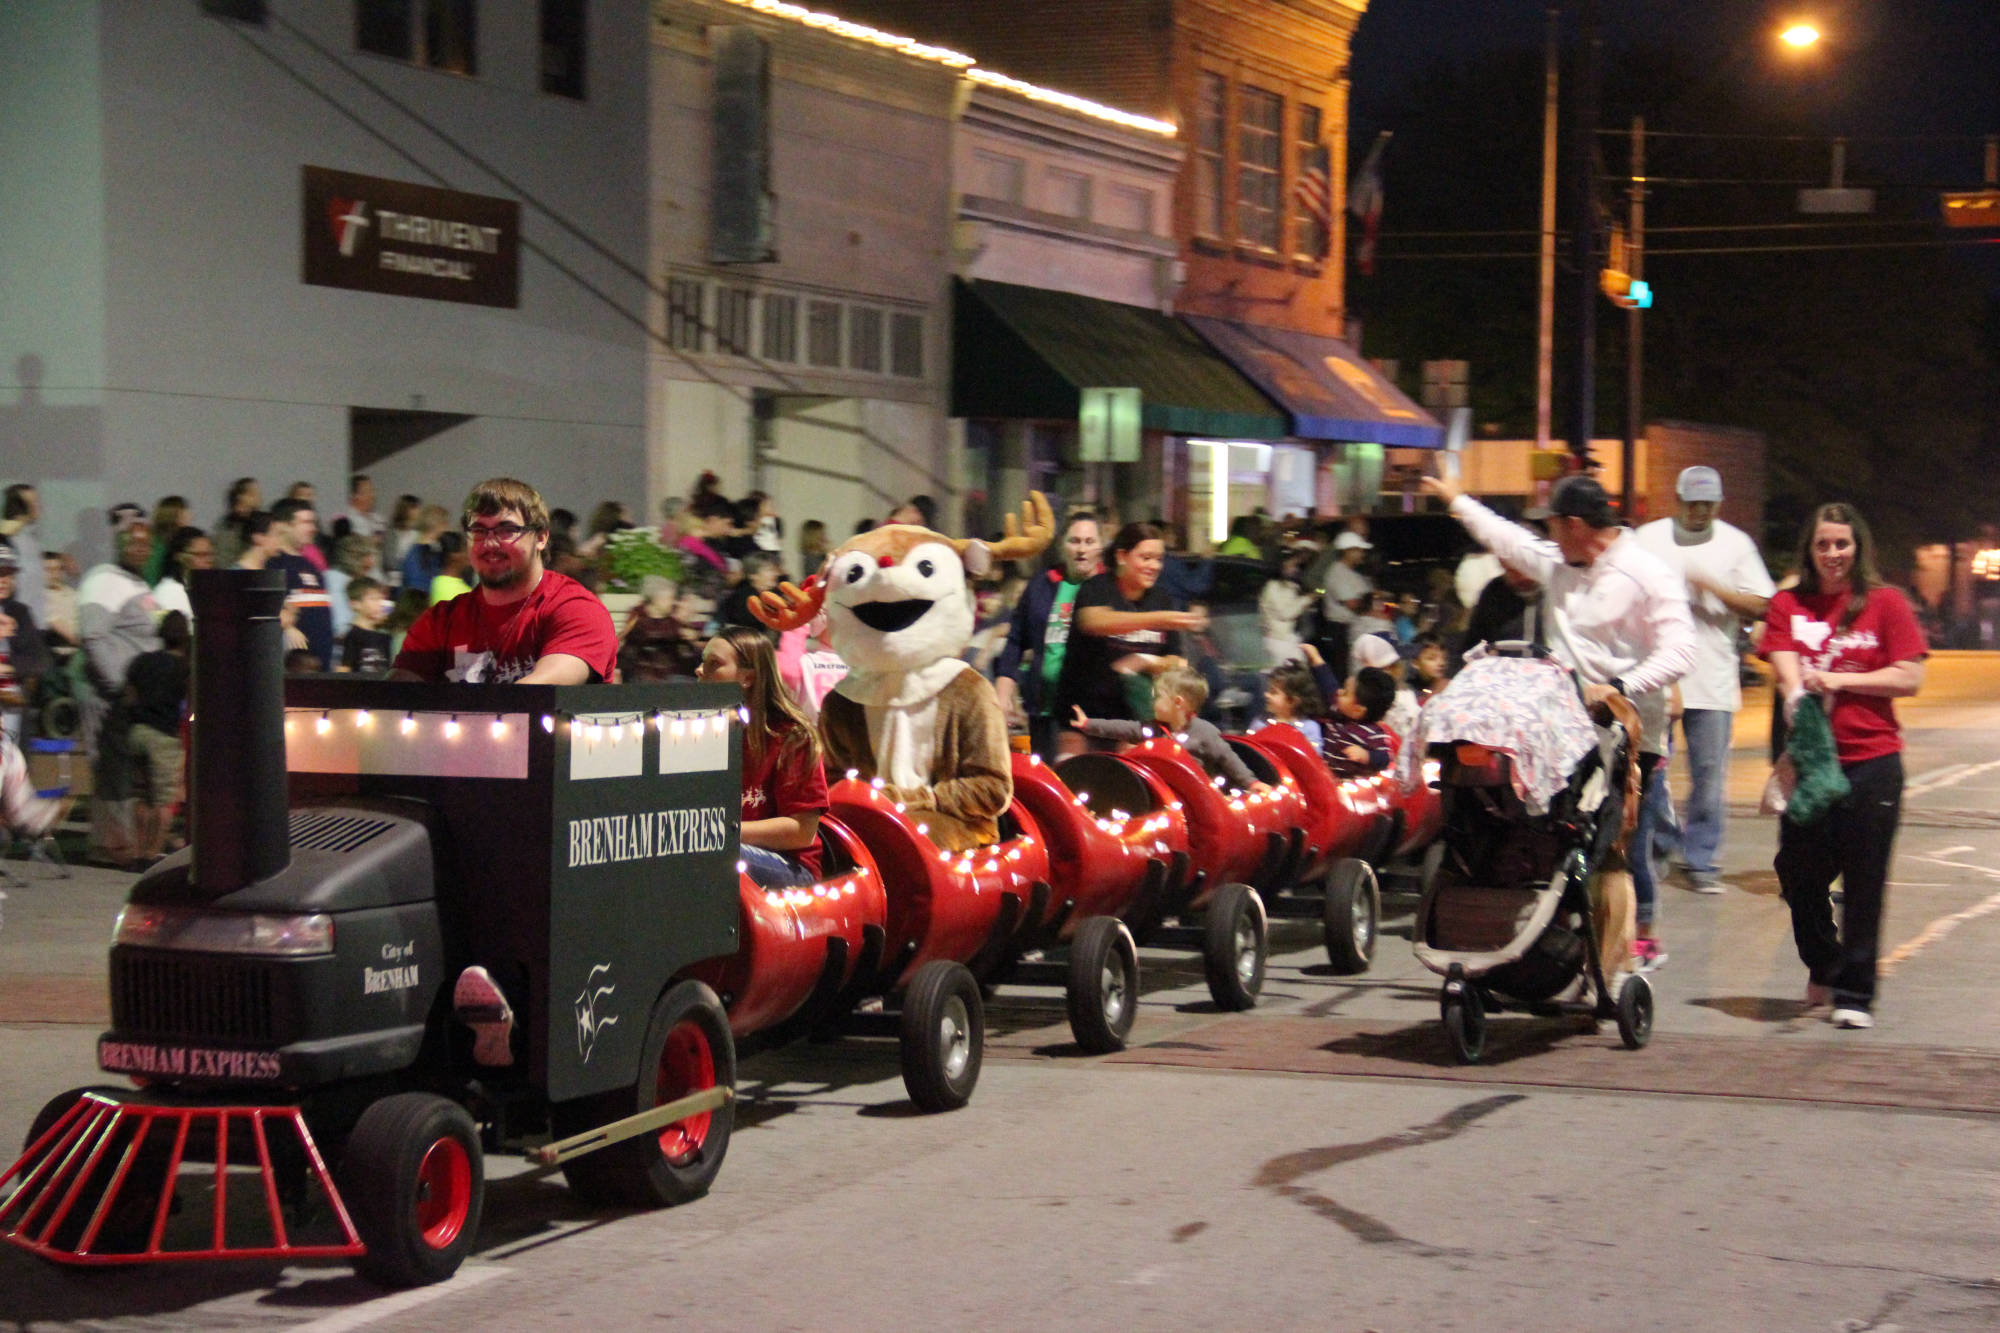 barrel train with city staff passing out candy - Frosty and Rudolph and kids sitting in barrels